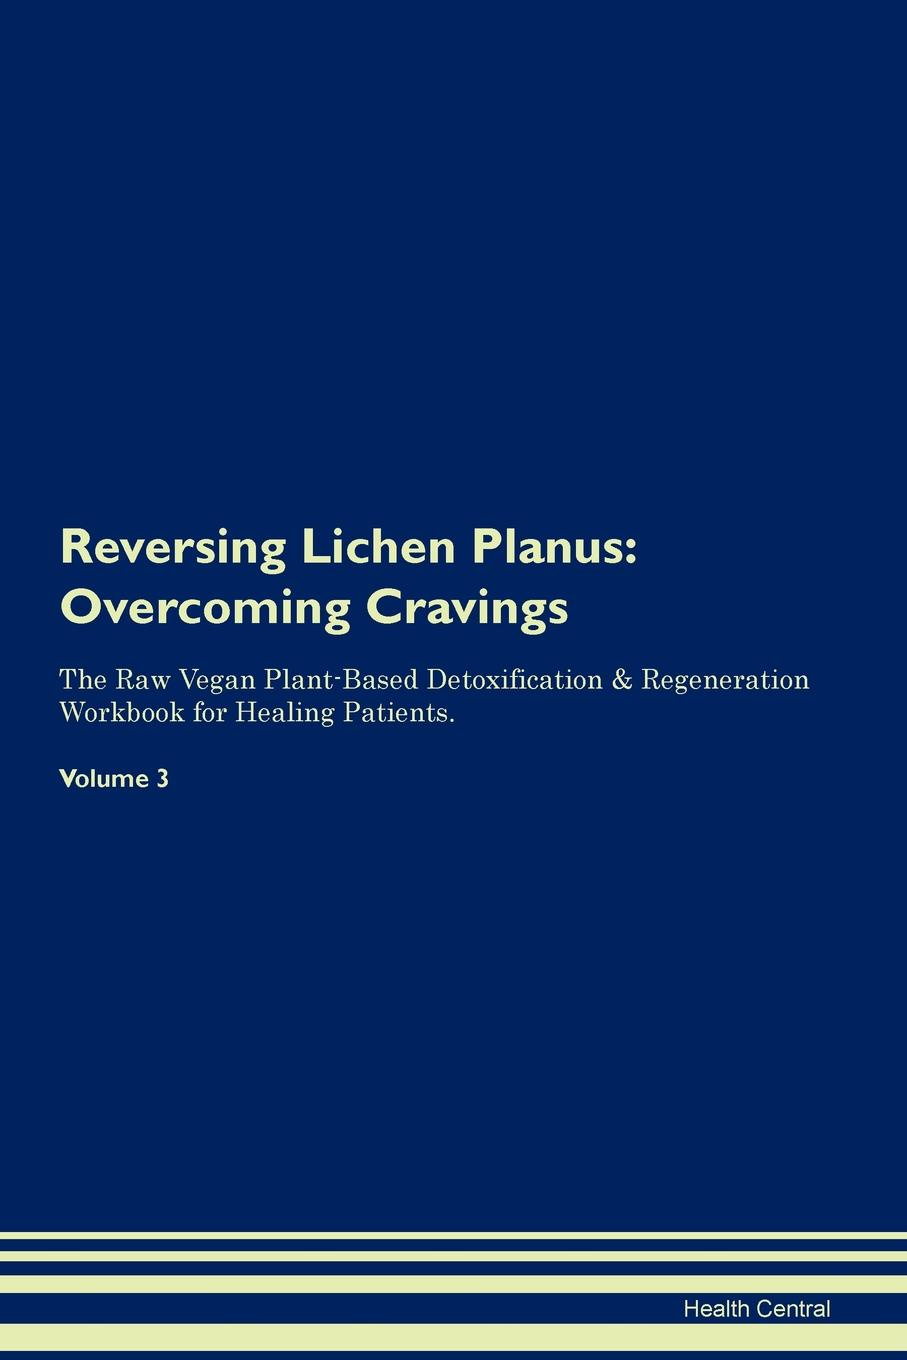 Reversing Lichen Planus. Overcoming Cravings The Raw Vegan Plant-Based Detoxification & Regeneration Workbook for Healing Patients. Volume 3